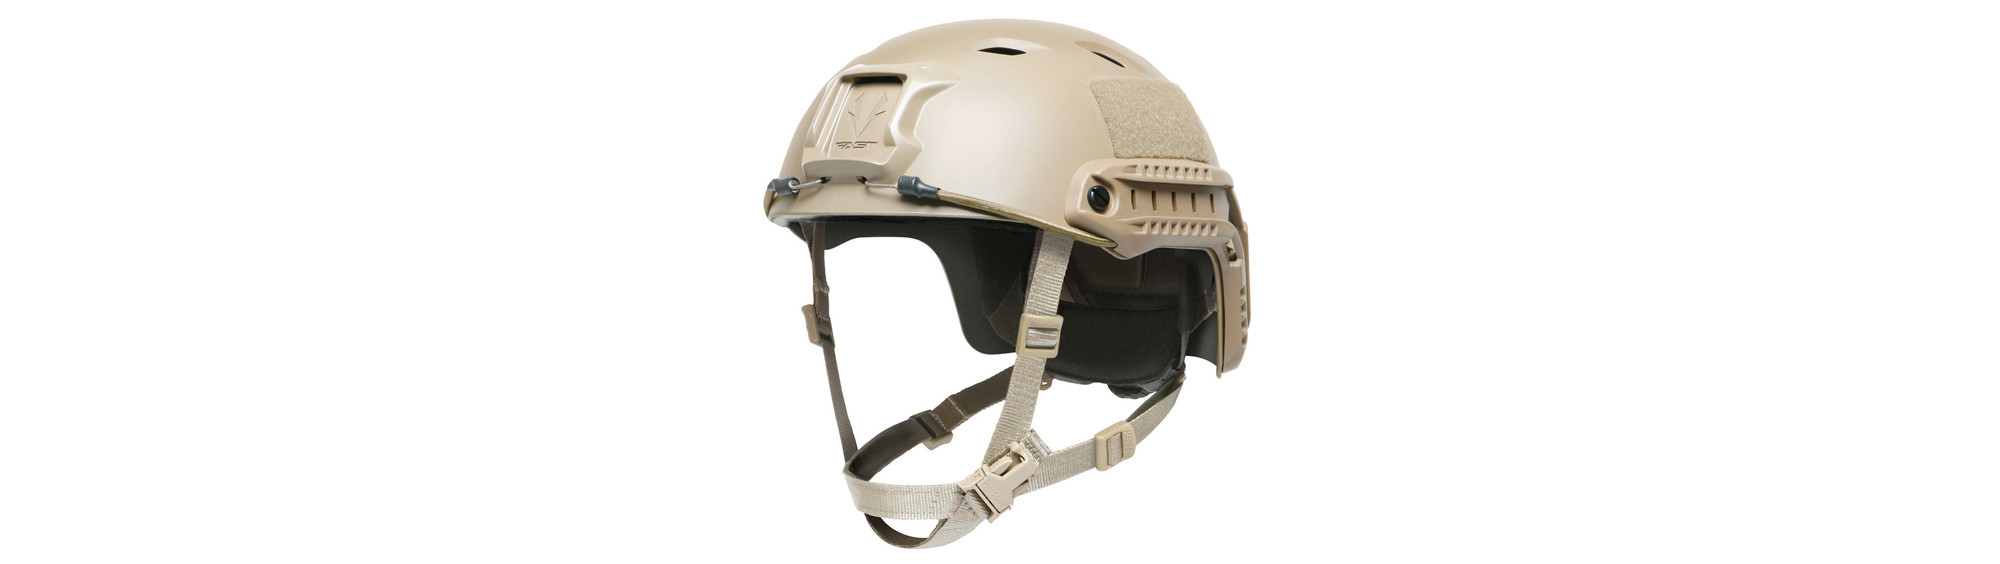 UPDATED Product Advisory for Ops-Core FAST Base Jump Helmet (FAST Bump)*